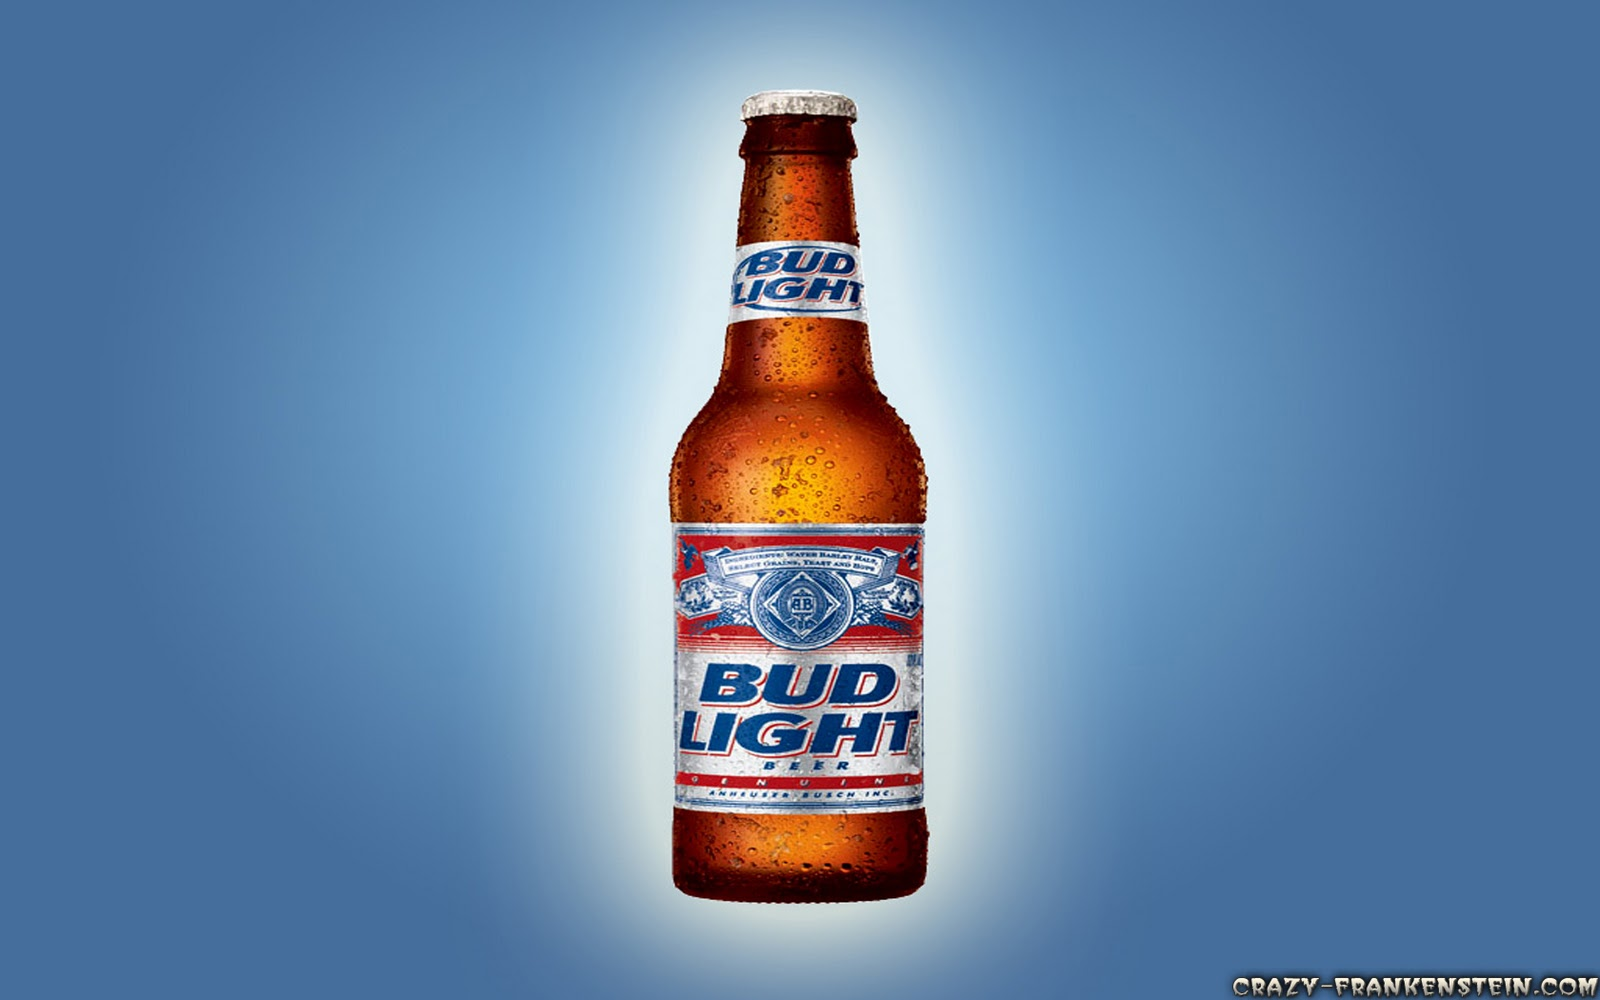 Download bud light drinks wallpapers [1600x1000] | 70+ Bud